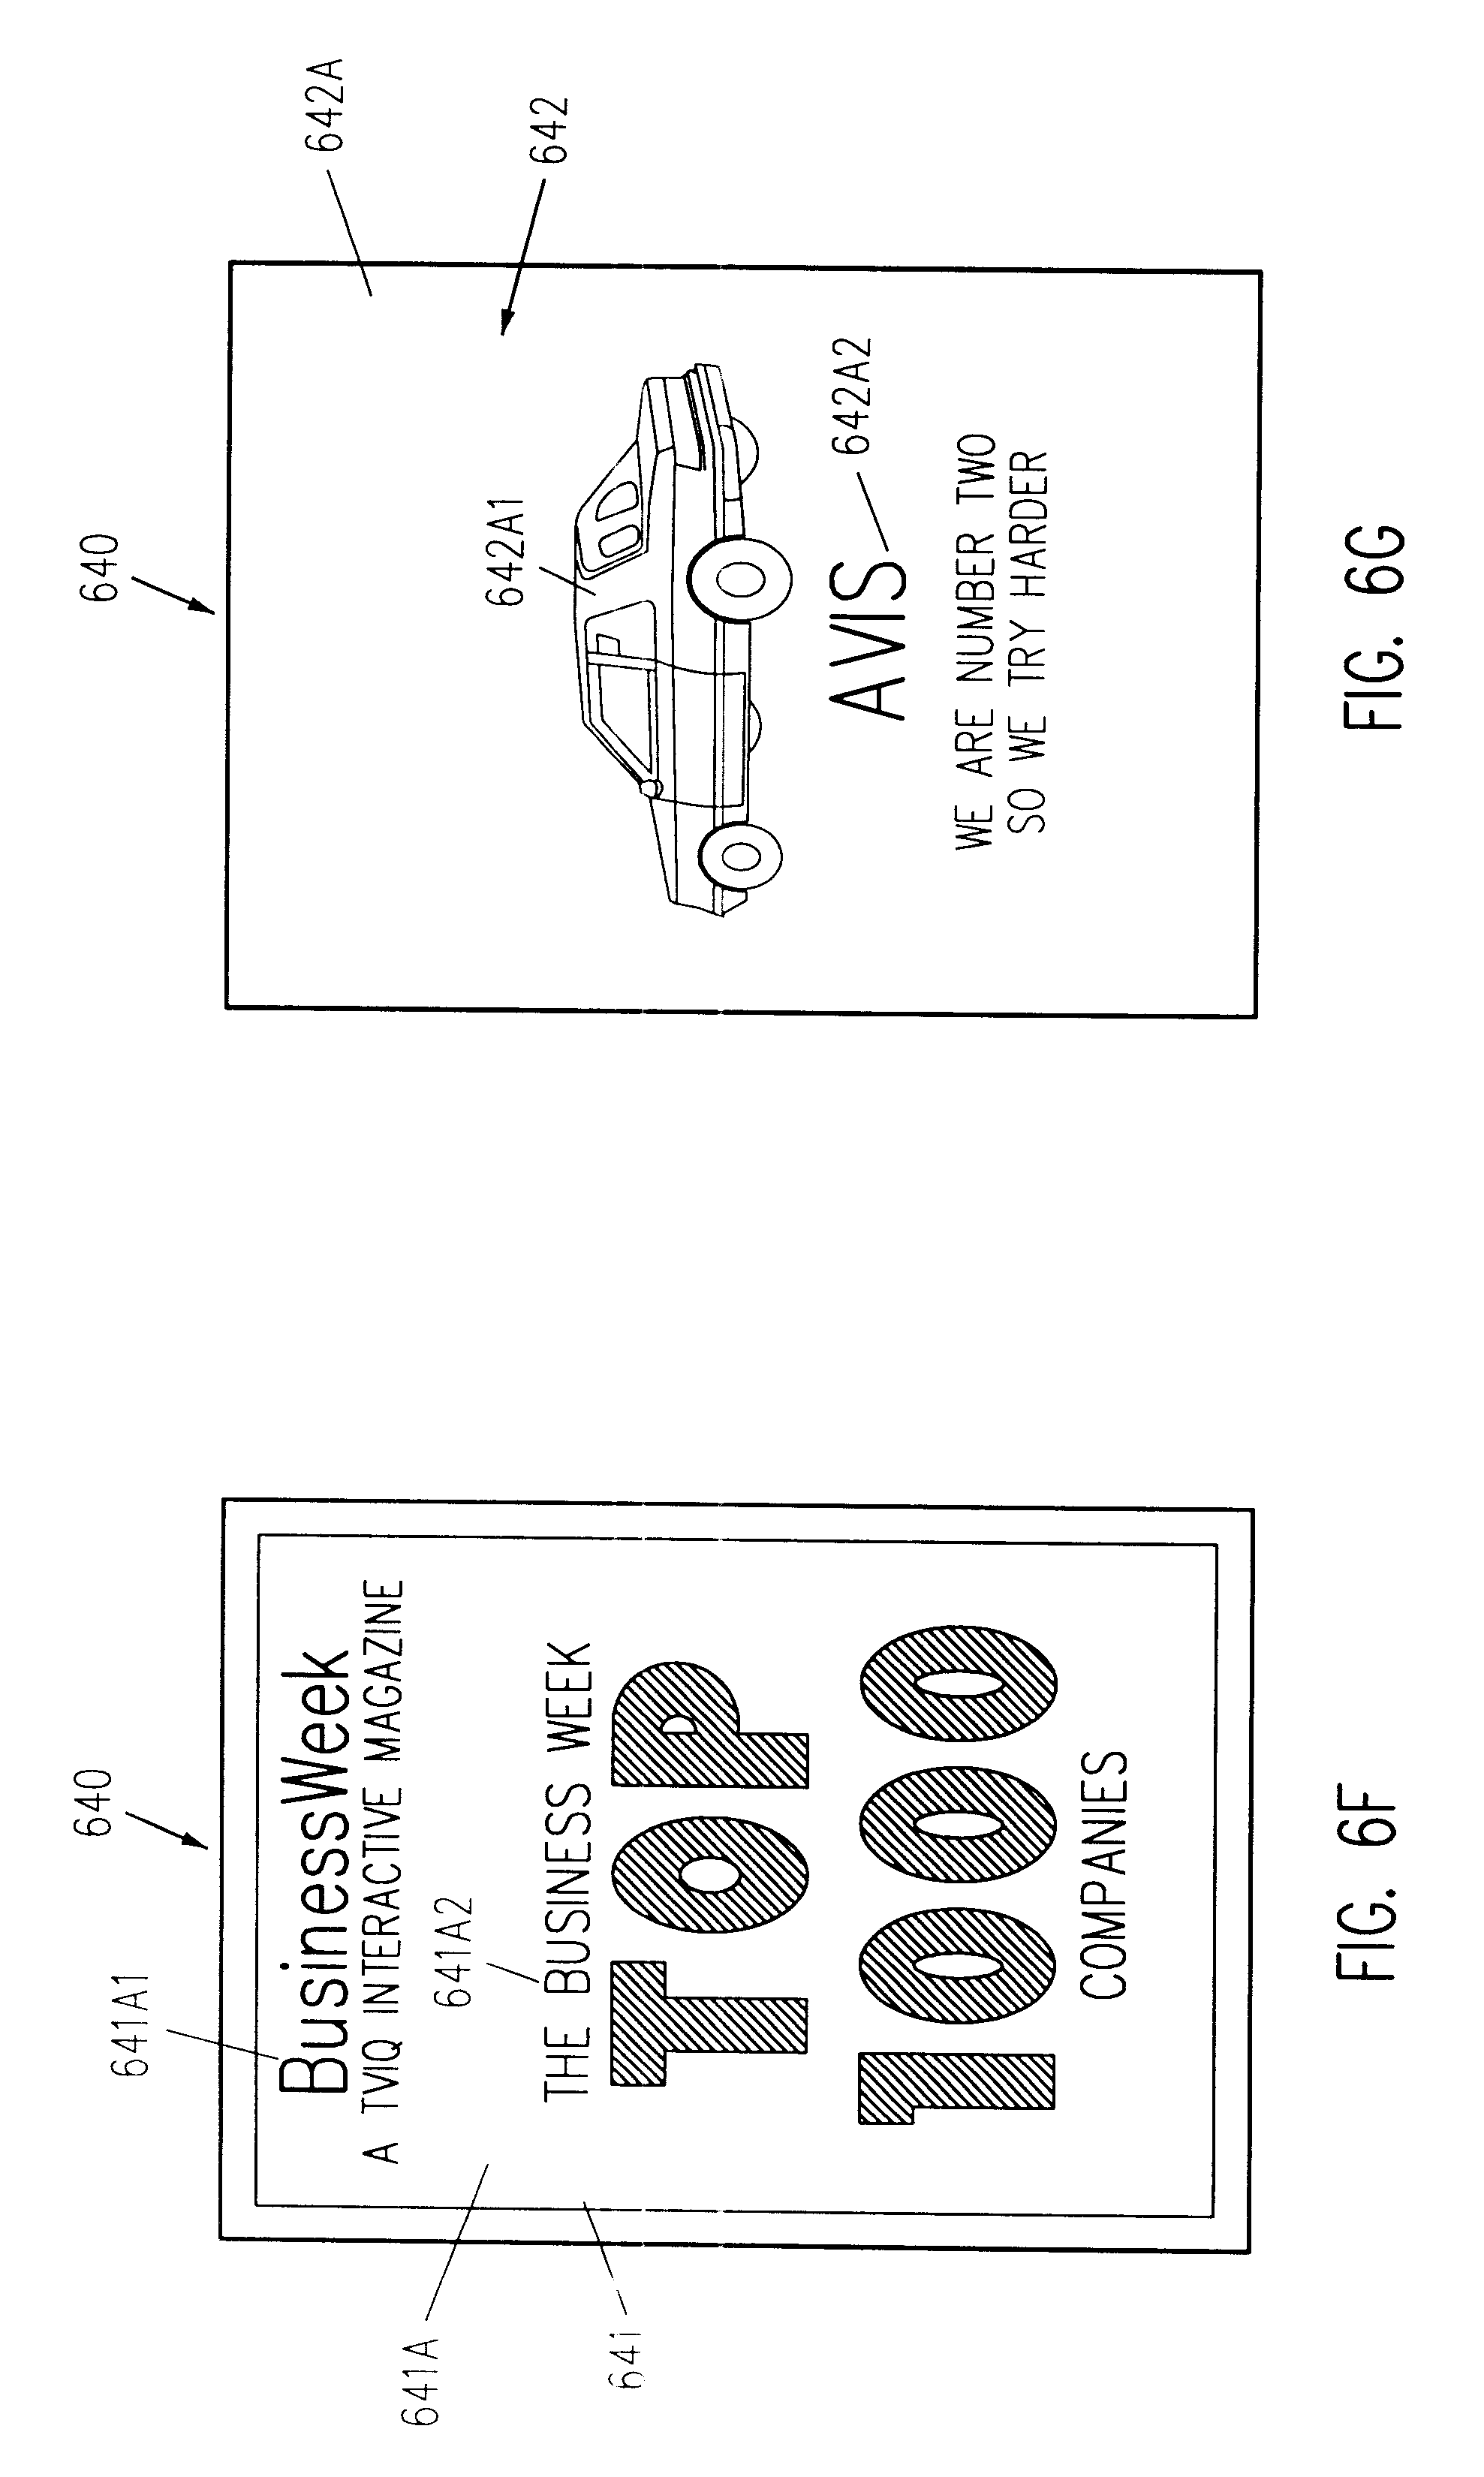 Patent Us6249863 Host Device Equipped With Means For Starting A Tv Infrared Remote Control Launch Circuit Remotecontrolcircuit Drawing